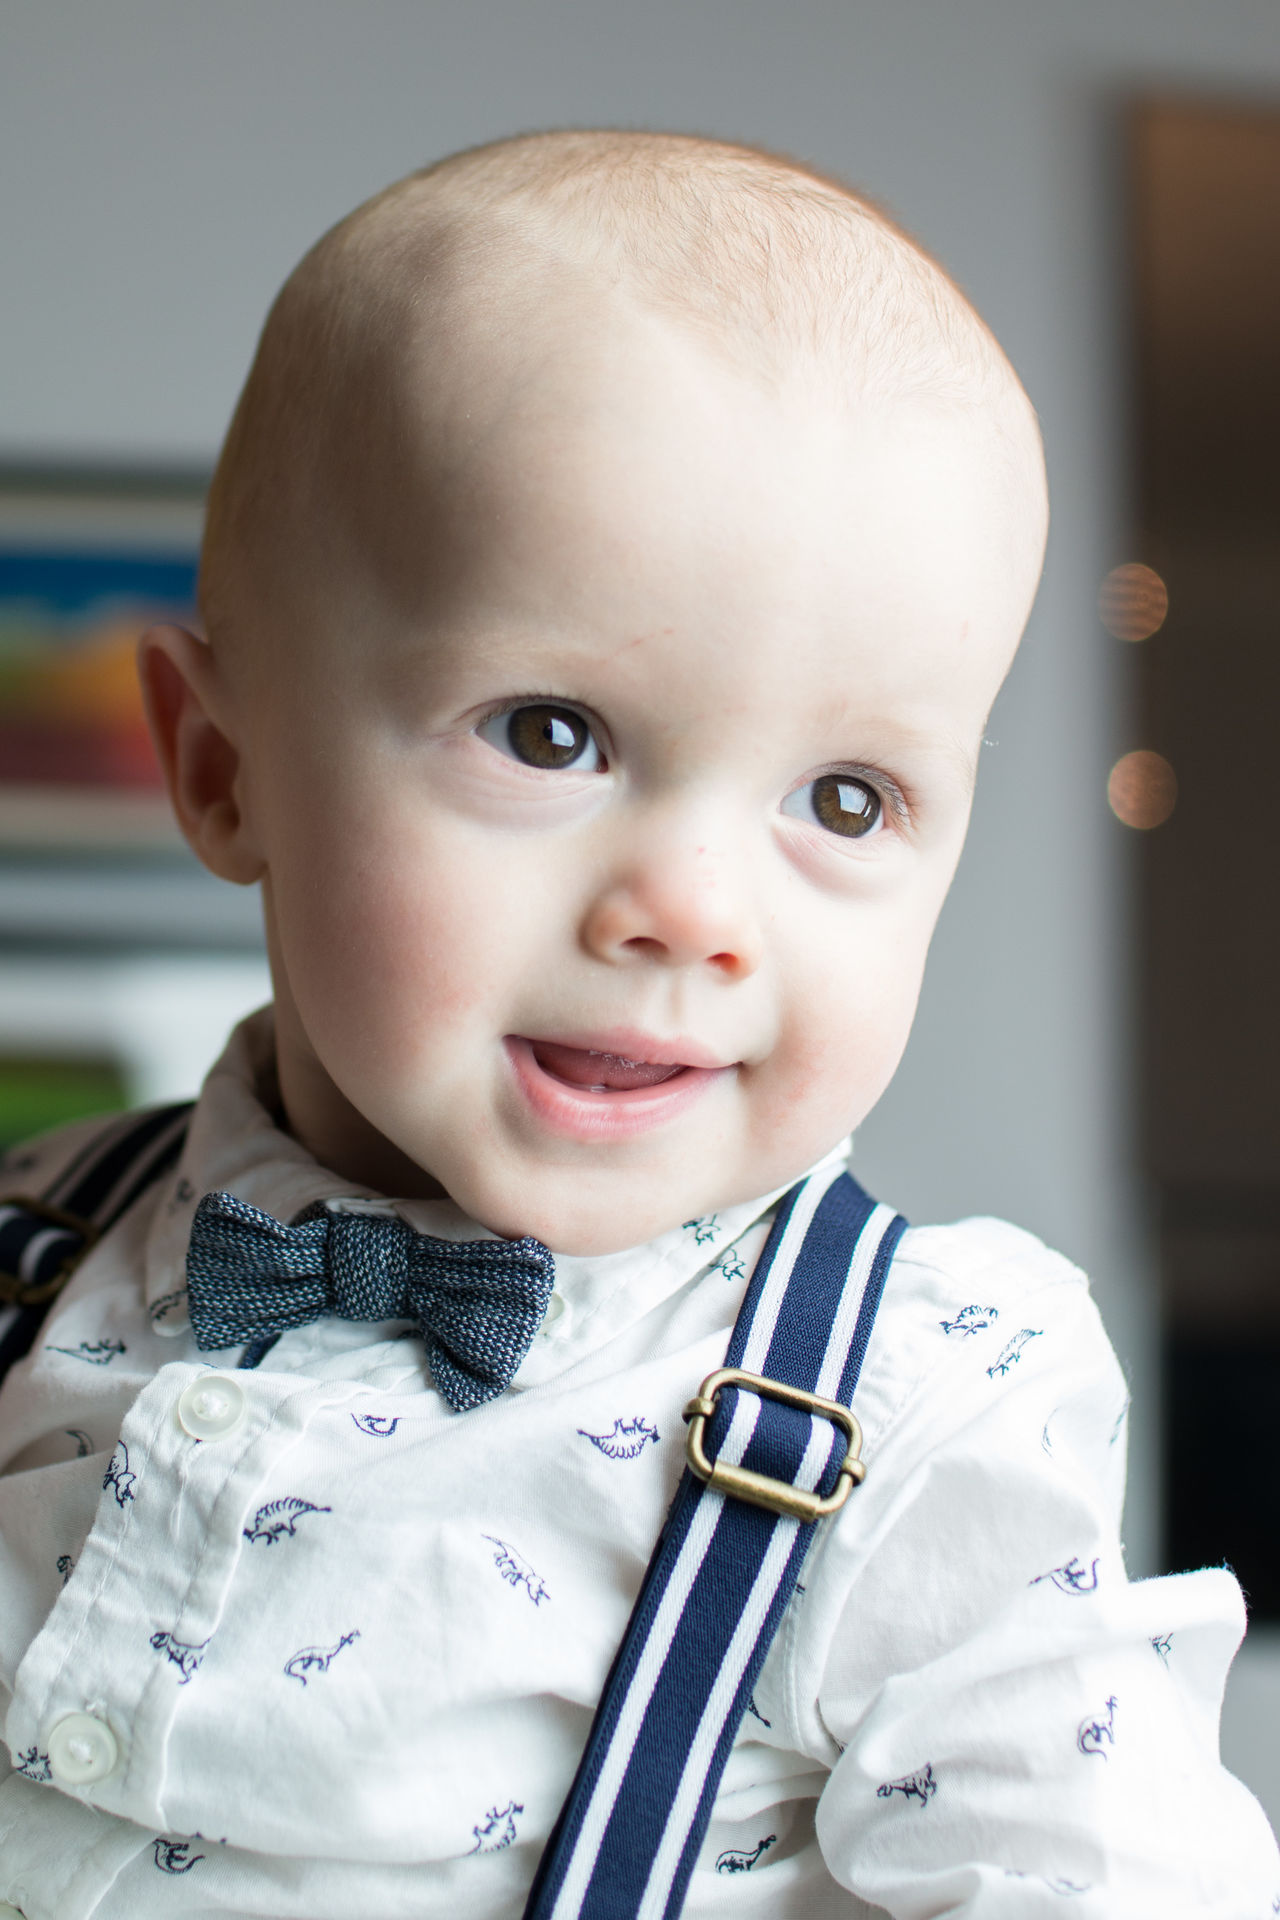 cute closeup Babies Only Baby Baby Bpy Bow Tie Child Childhood Close-up Cute Cute Baby Day Eyes Happy Baby Headshot Human Body Part Human Face Indoors  One Person Portrait Portraits Smartly Dressed Baby Smiling Baby  Sweet Baby